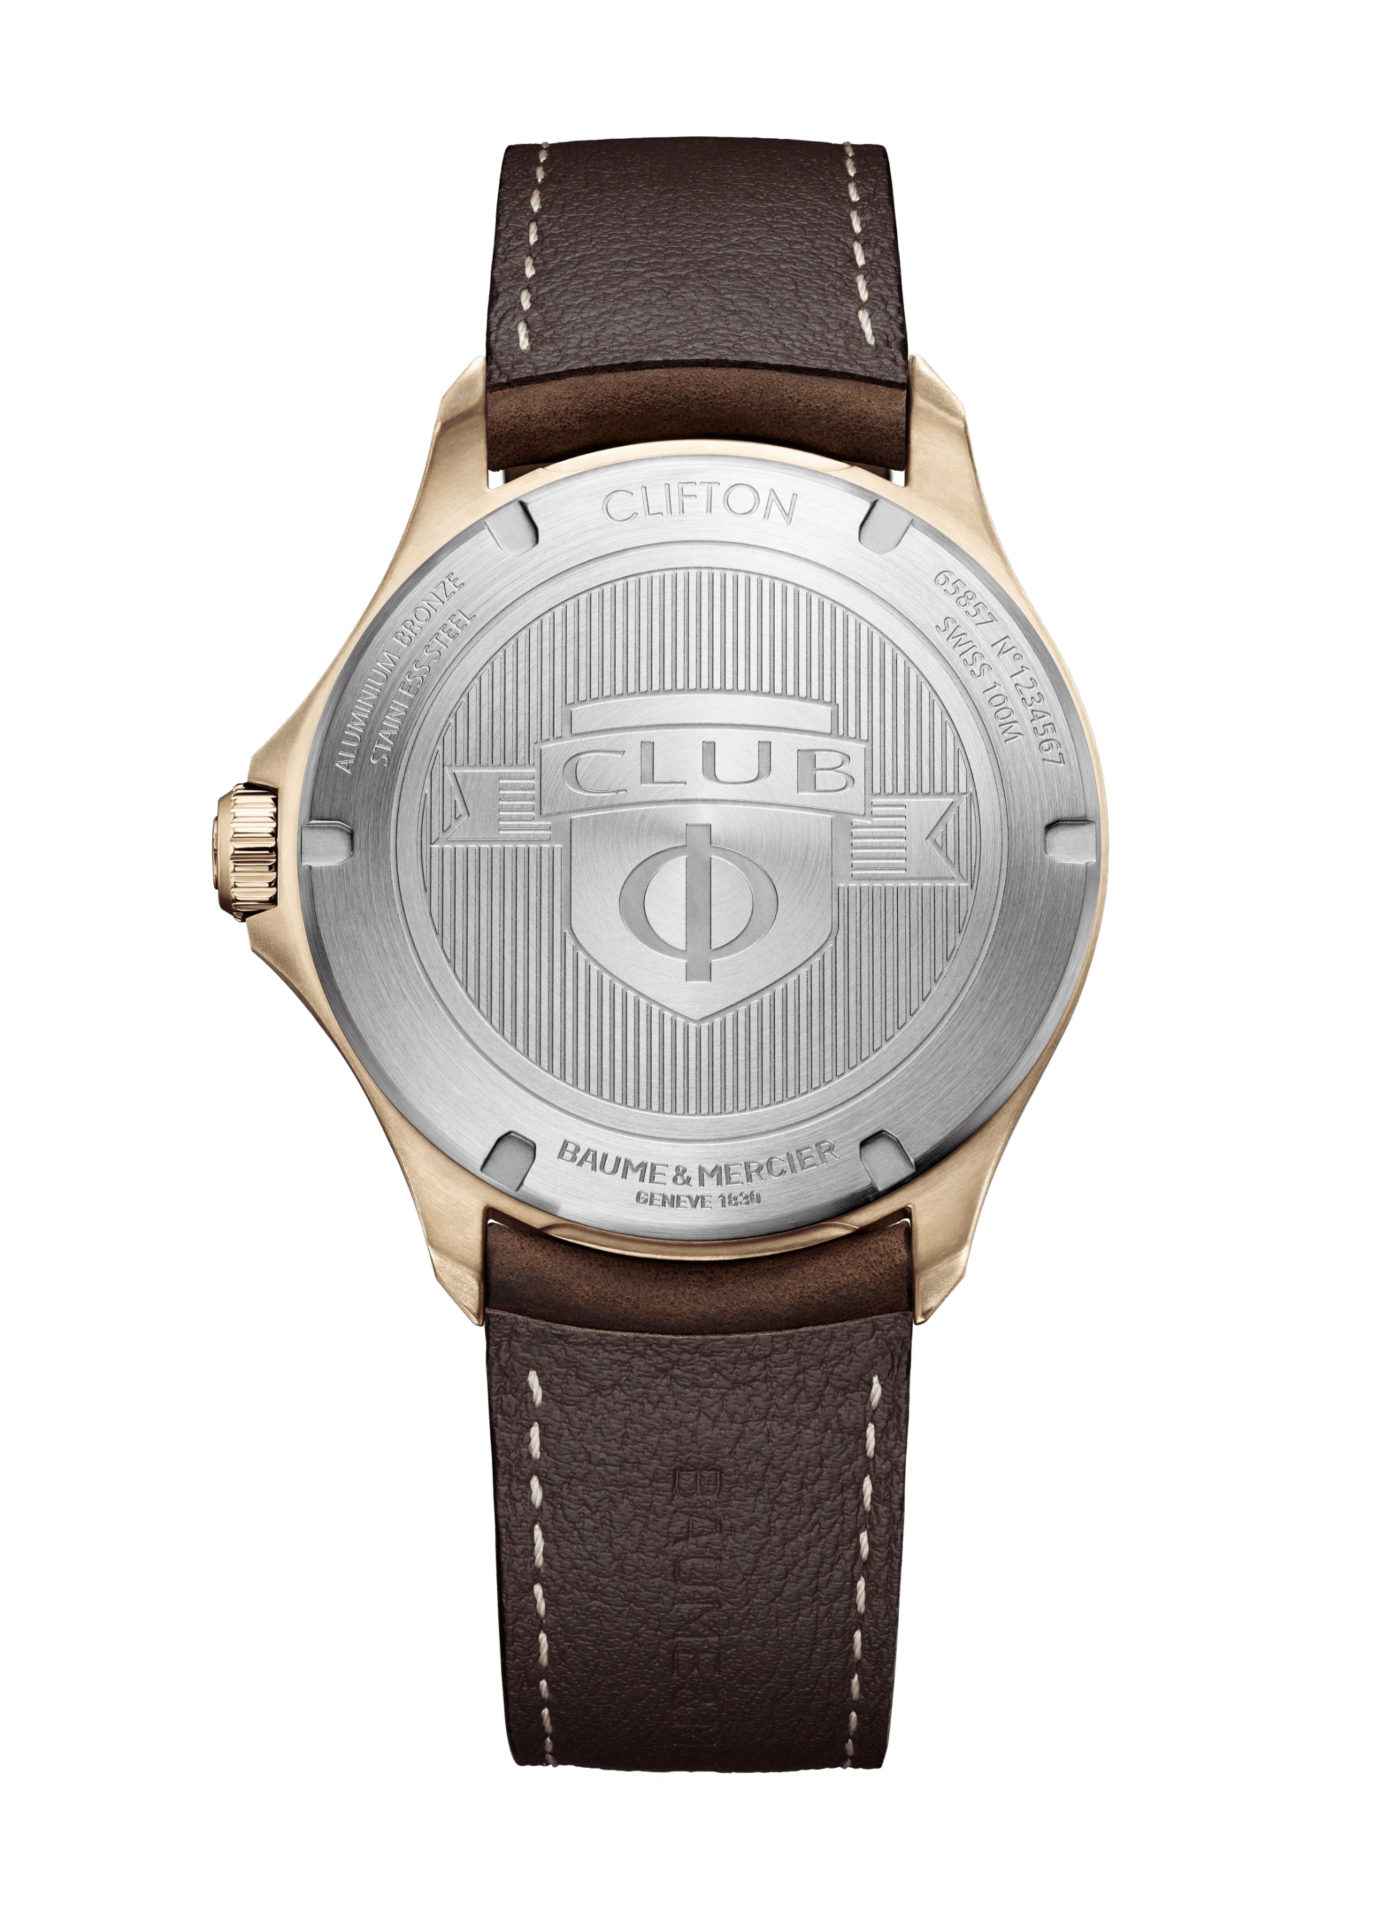 Baume-&-Mercier-Clifton-Club-10502***-Hall-of-Time